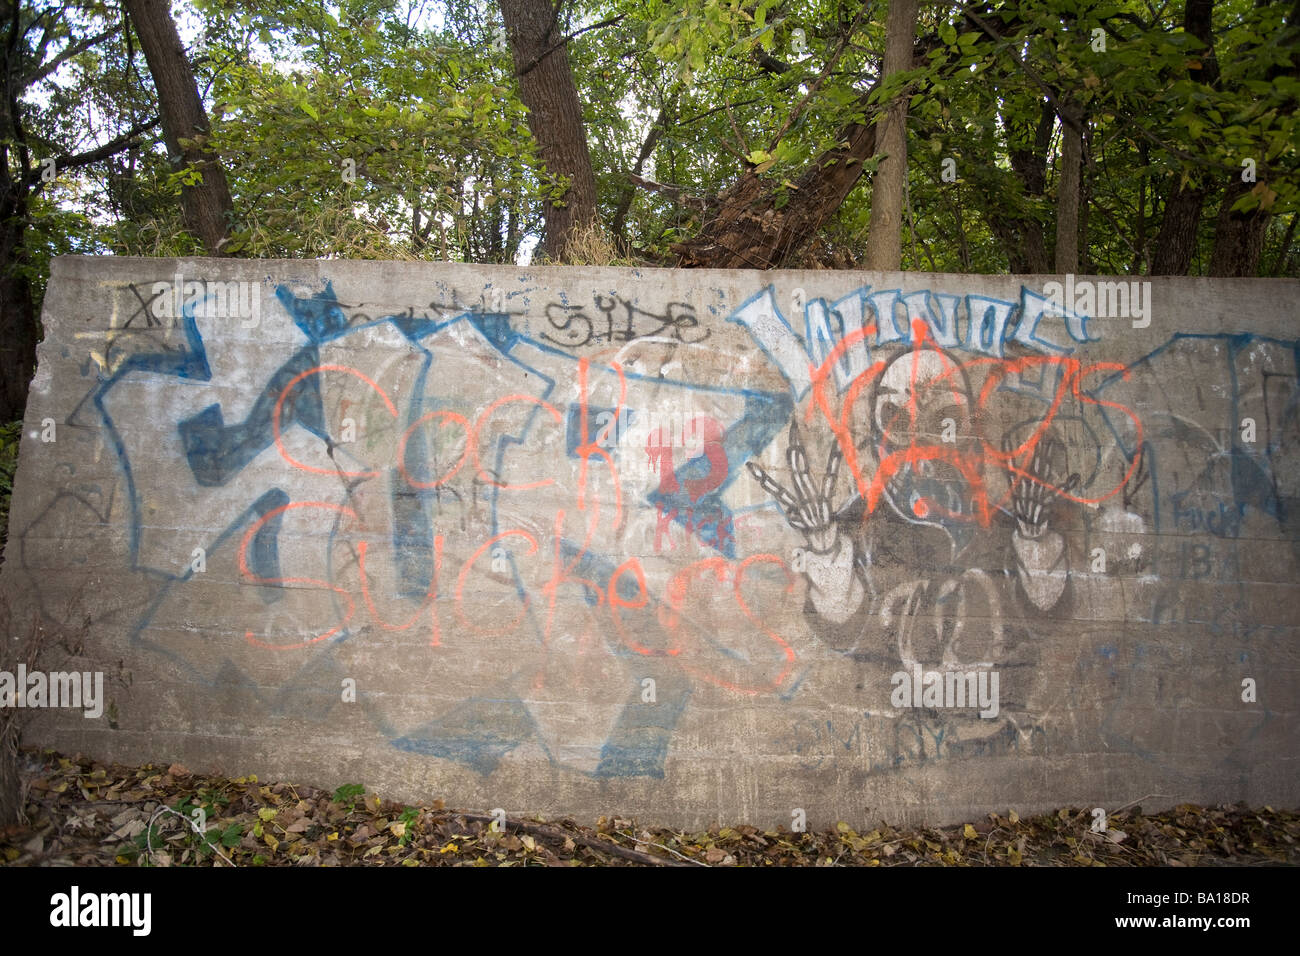 Gang grafitti in rural USA. Gangs are migrating from inner cities to rural communities. - Stock Image